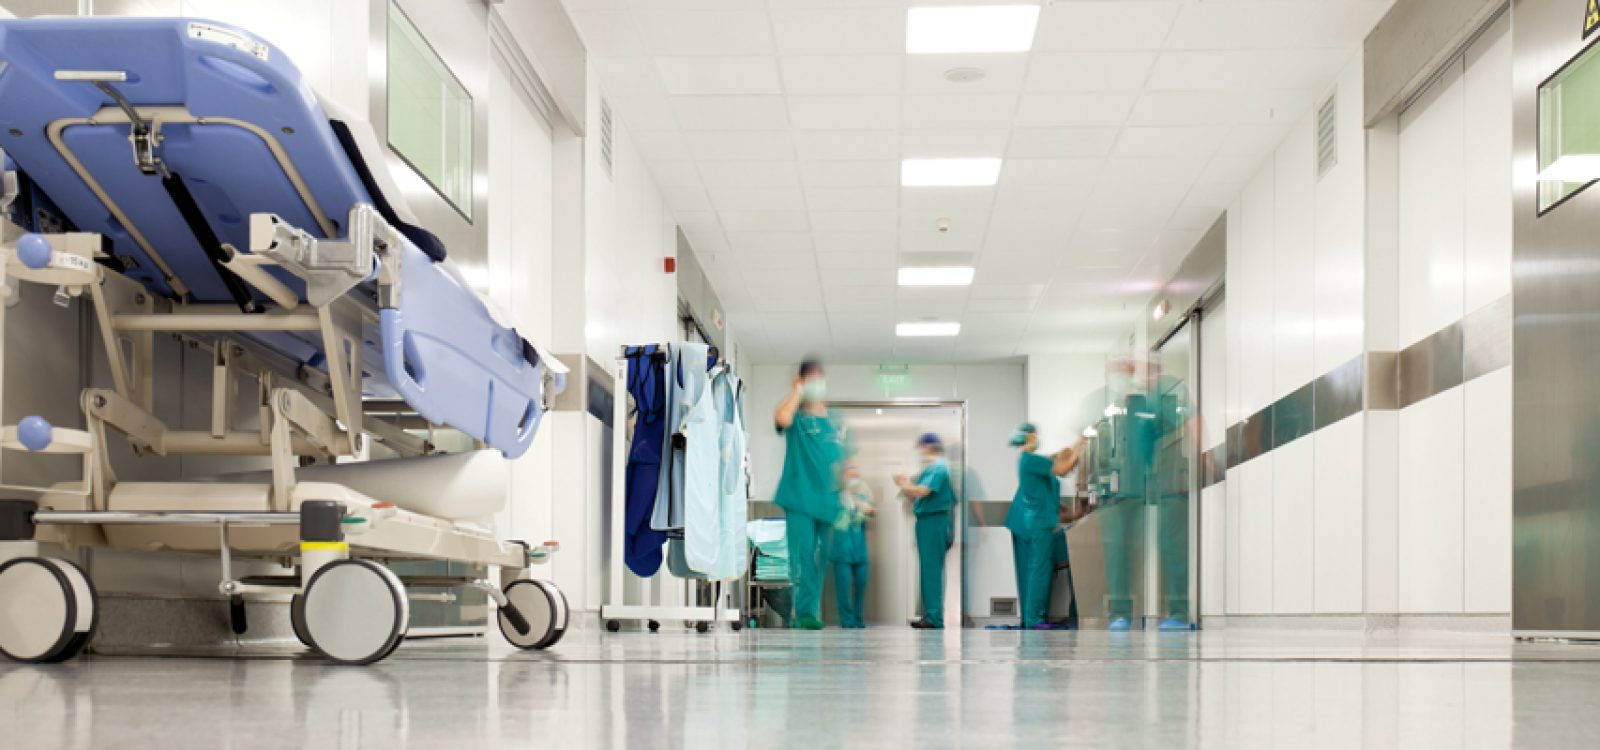 The National Efficient Price for Public Hospital Services – what is it, and what is its impact on the delivery of health services?